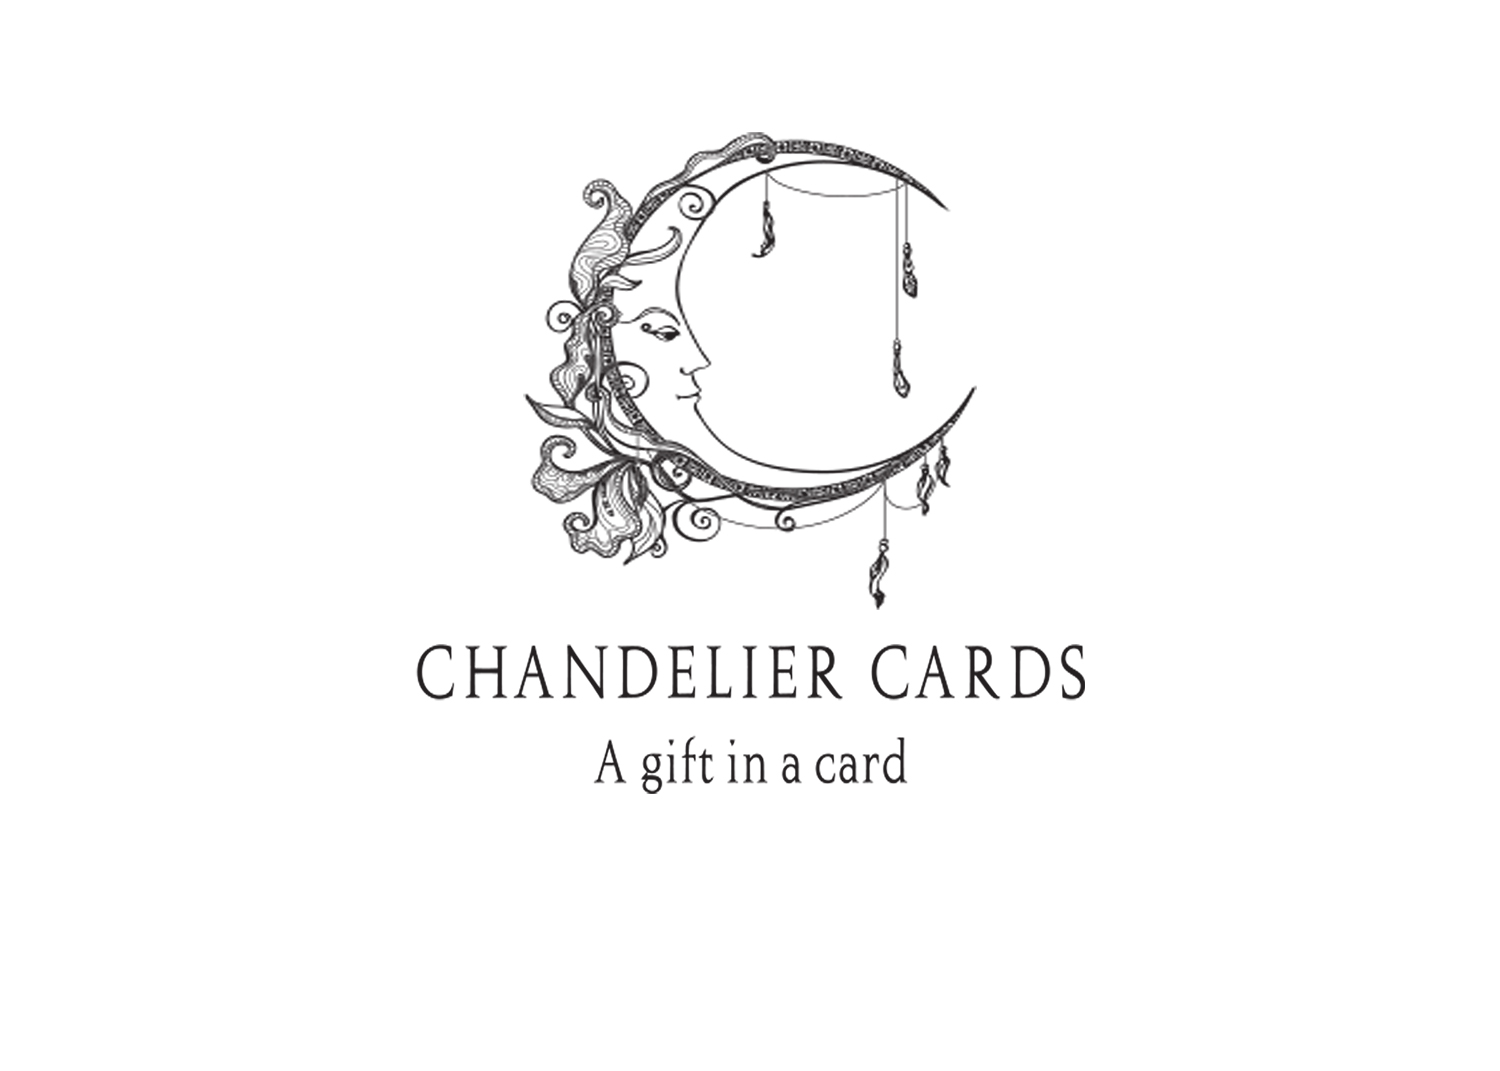 ChandelierCards.com